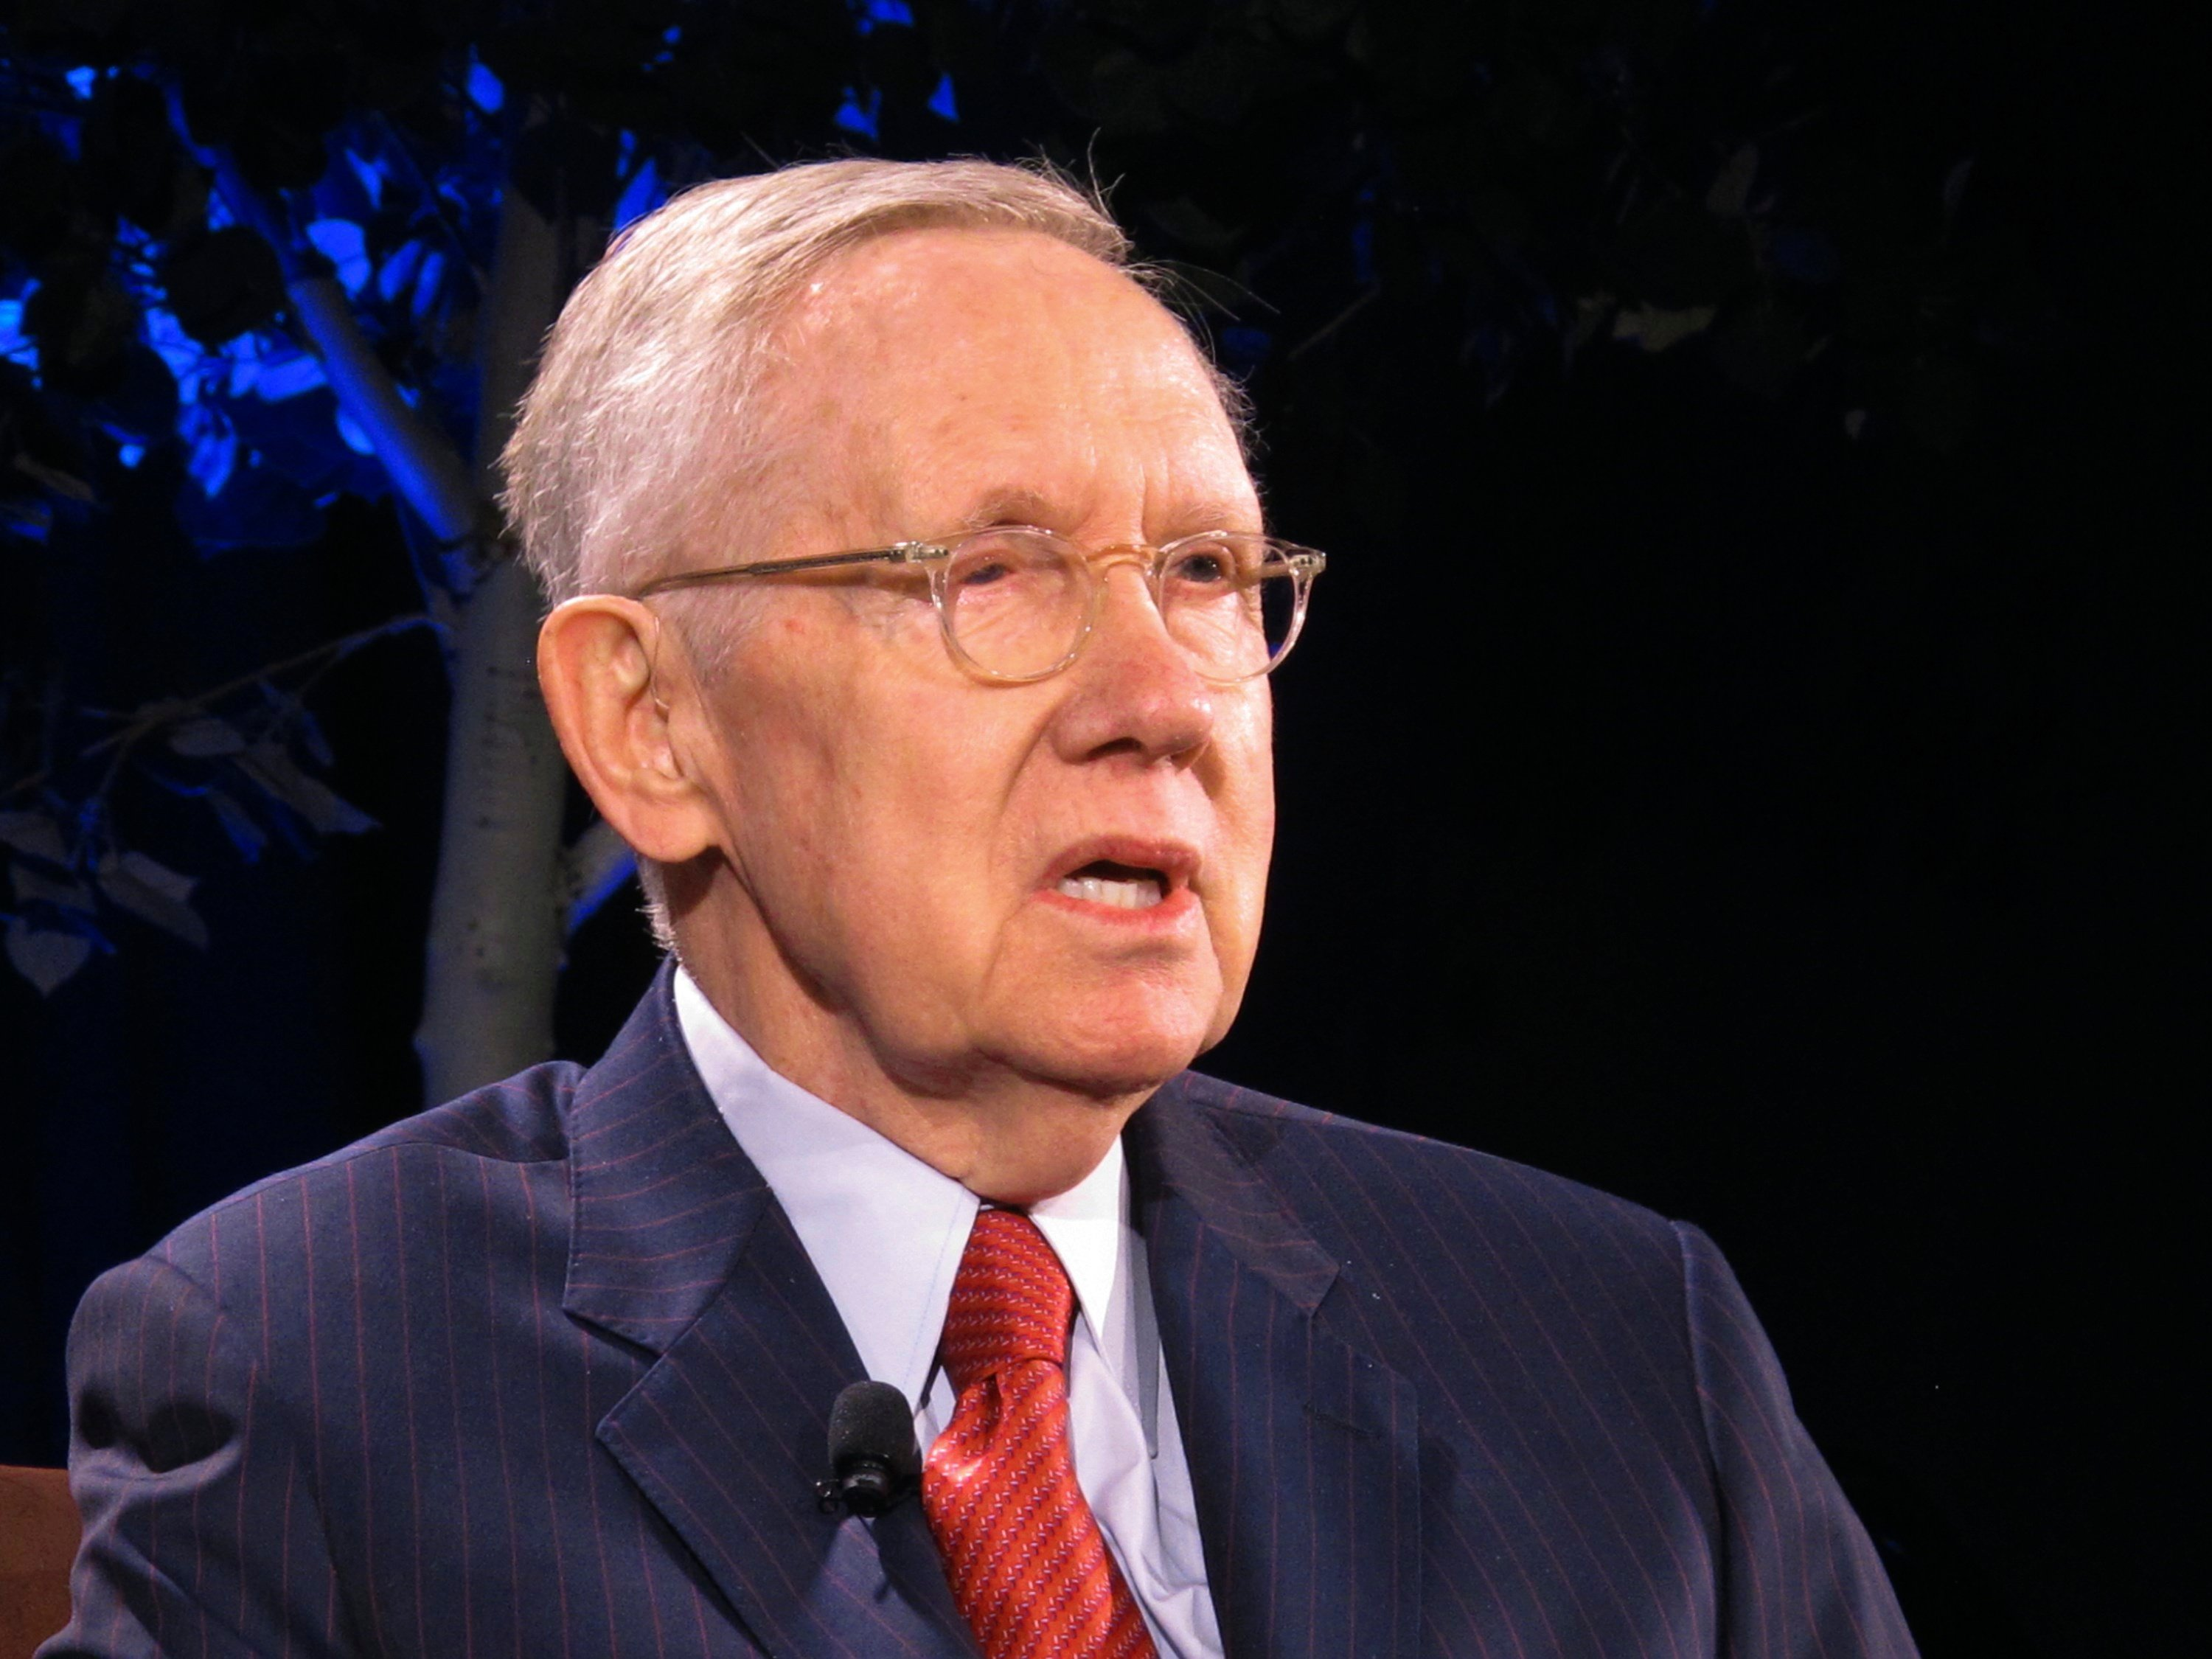 Nevada's Political Leaders React to Harry Reid's Cancer Diagnosis